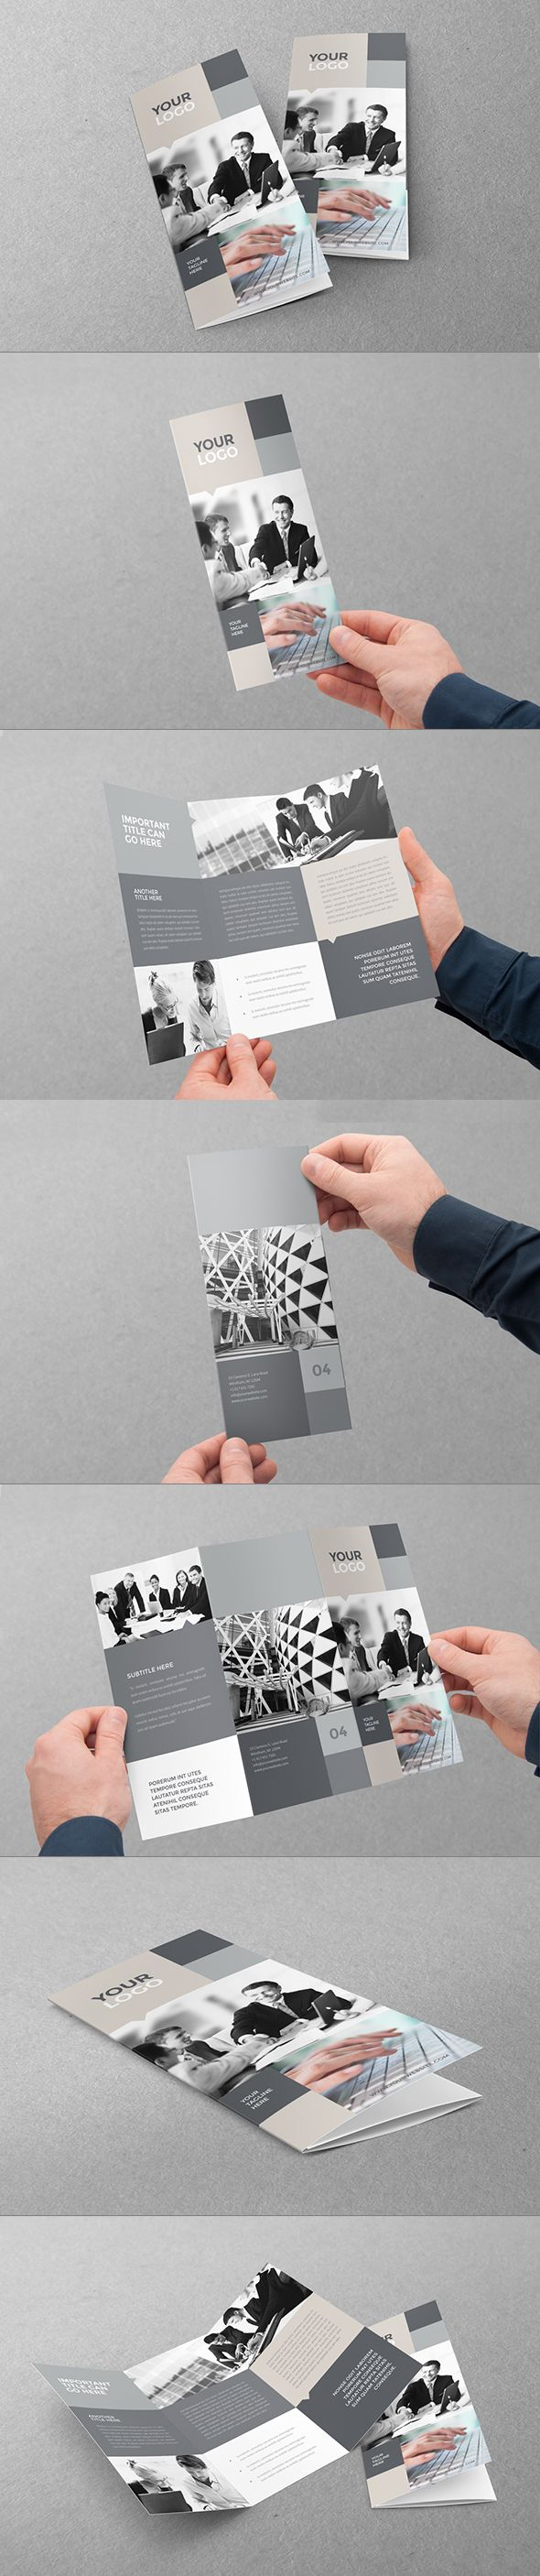 Simple Business Grey Trifold. Download here: http://graphicriver.net/item/simple-business-grey-trifold/11370585?ref=abradesign #design #brochure #trifold